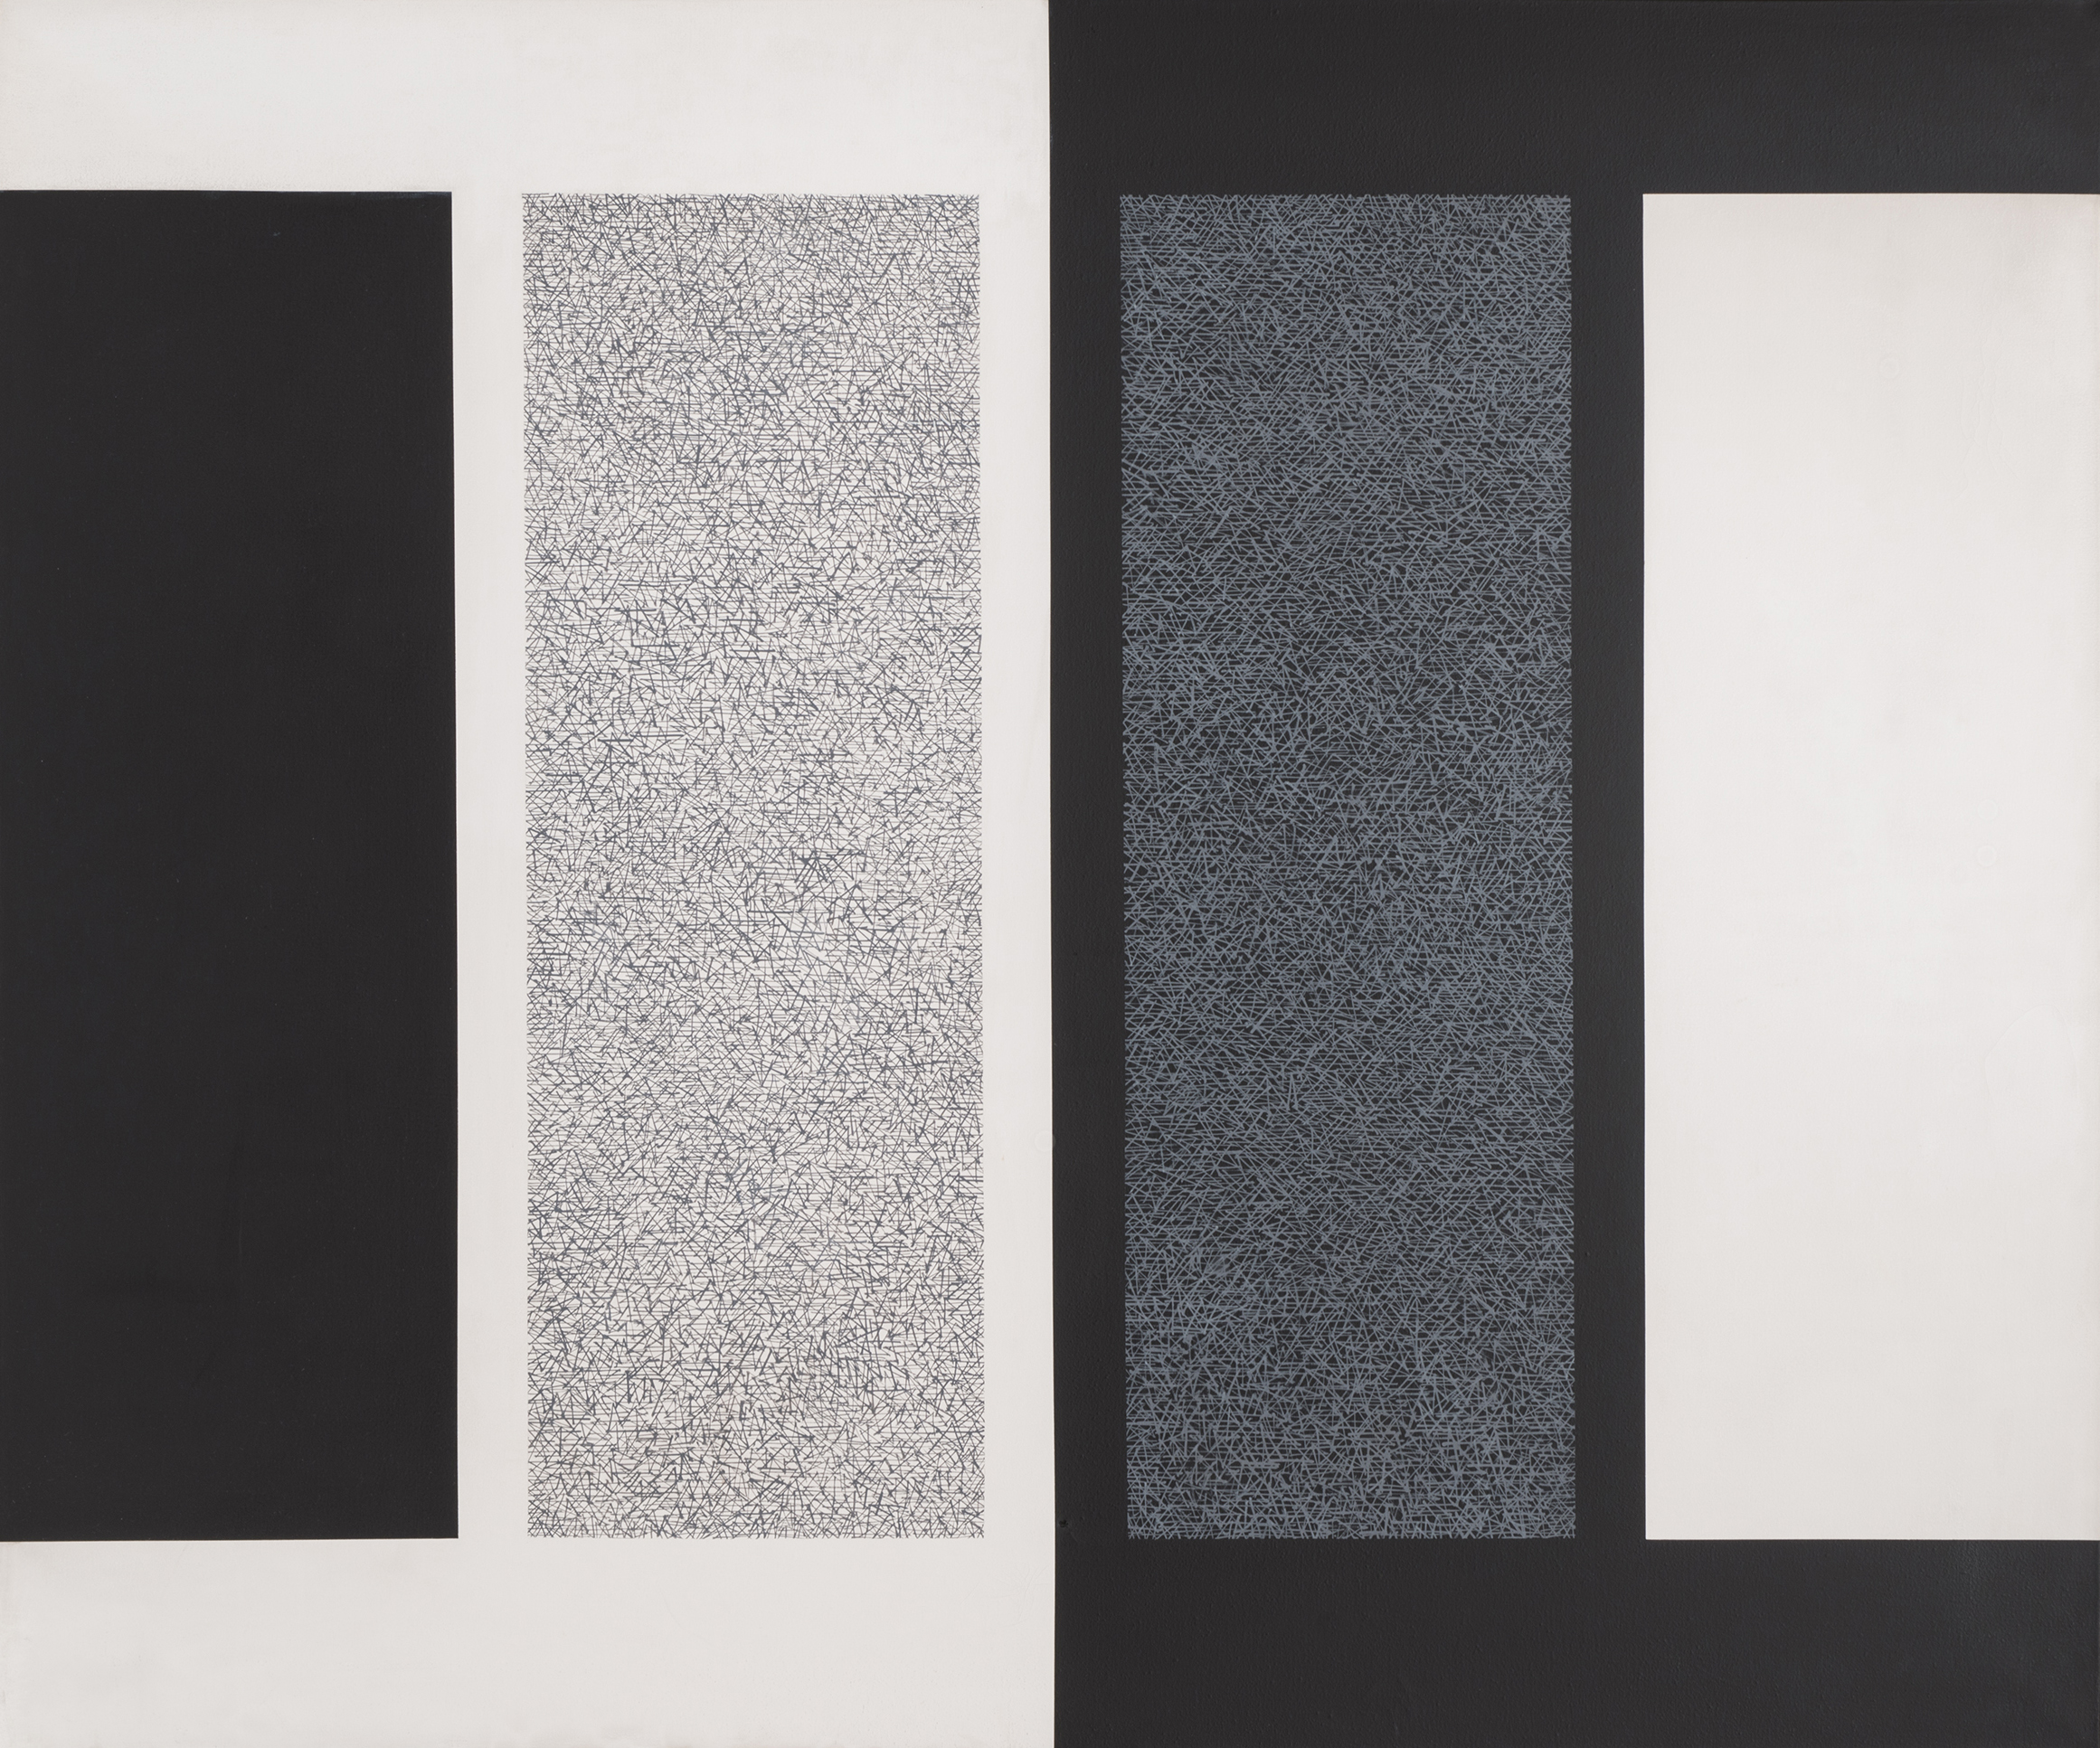 Homage to the Immaculates, 1965  , acrylic on canvas, 50 x 60 inches